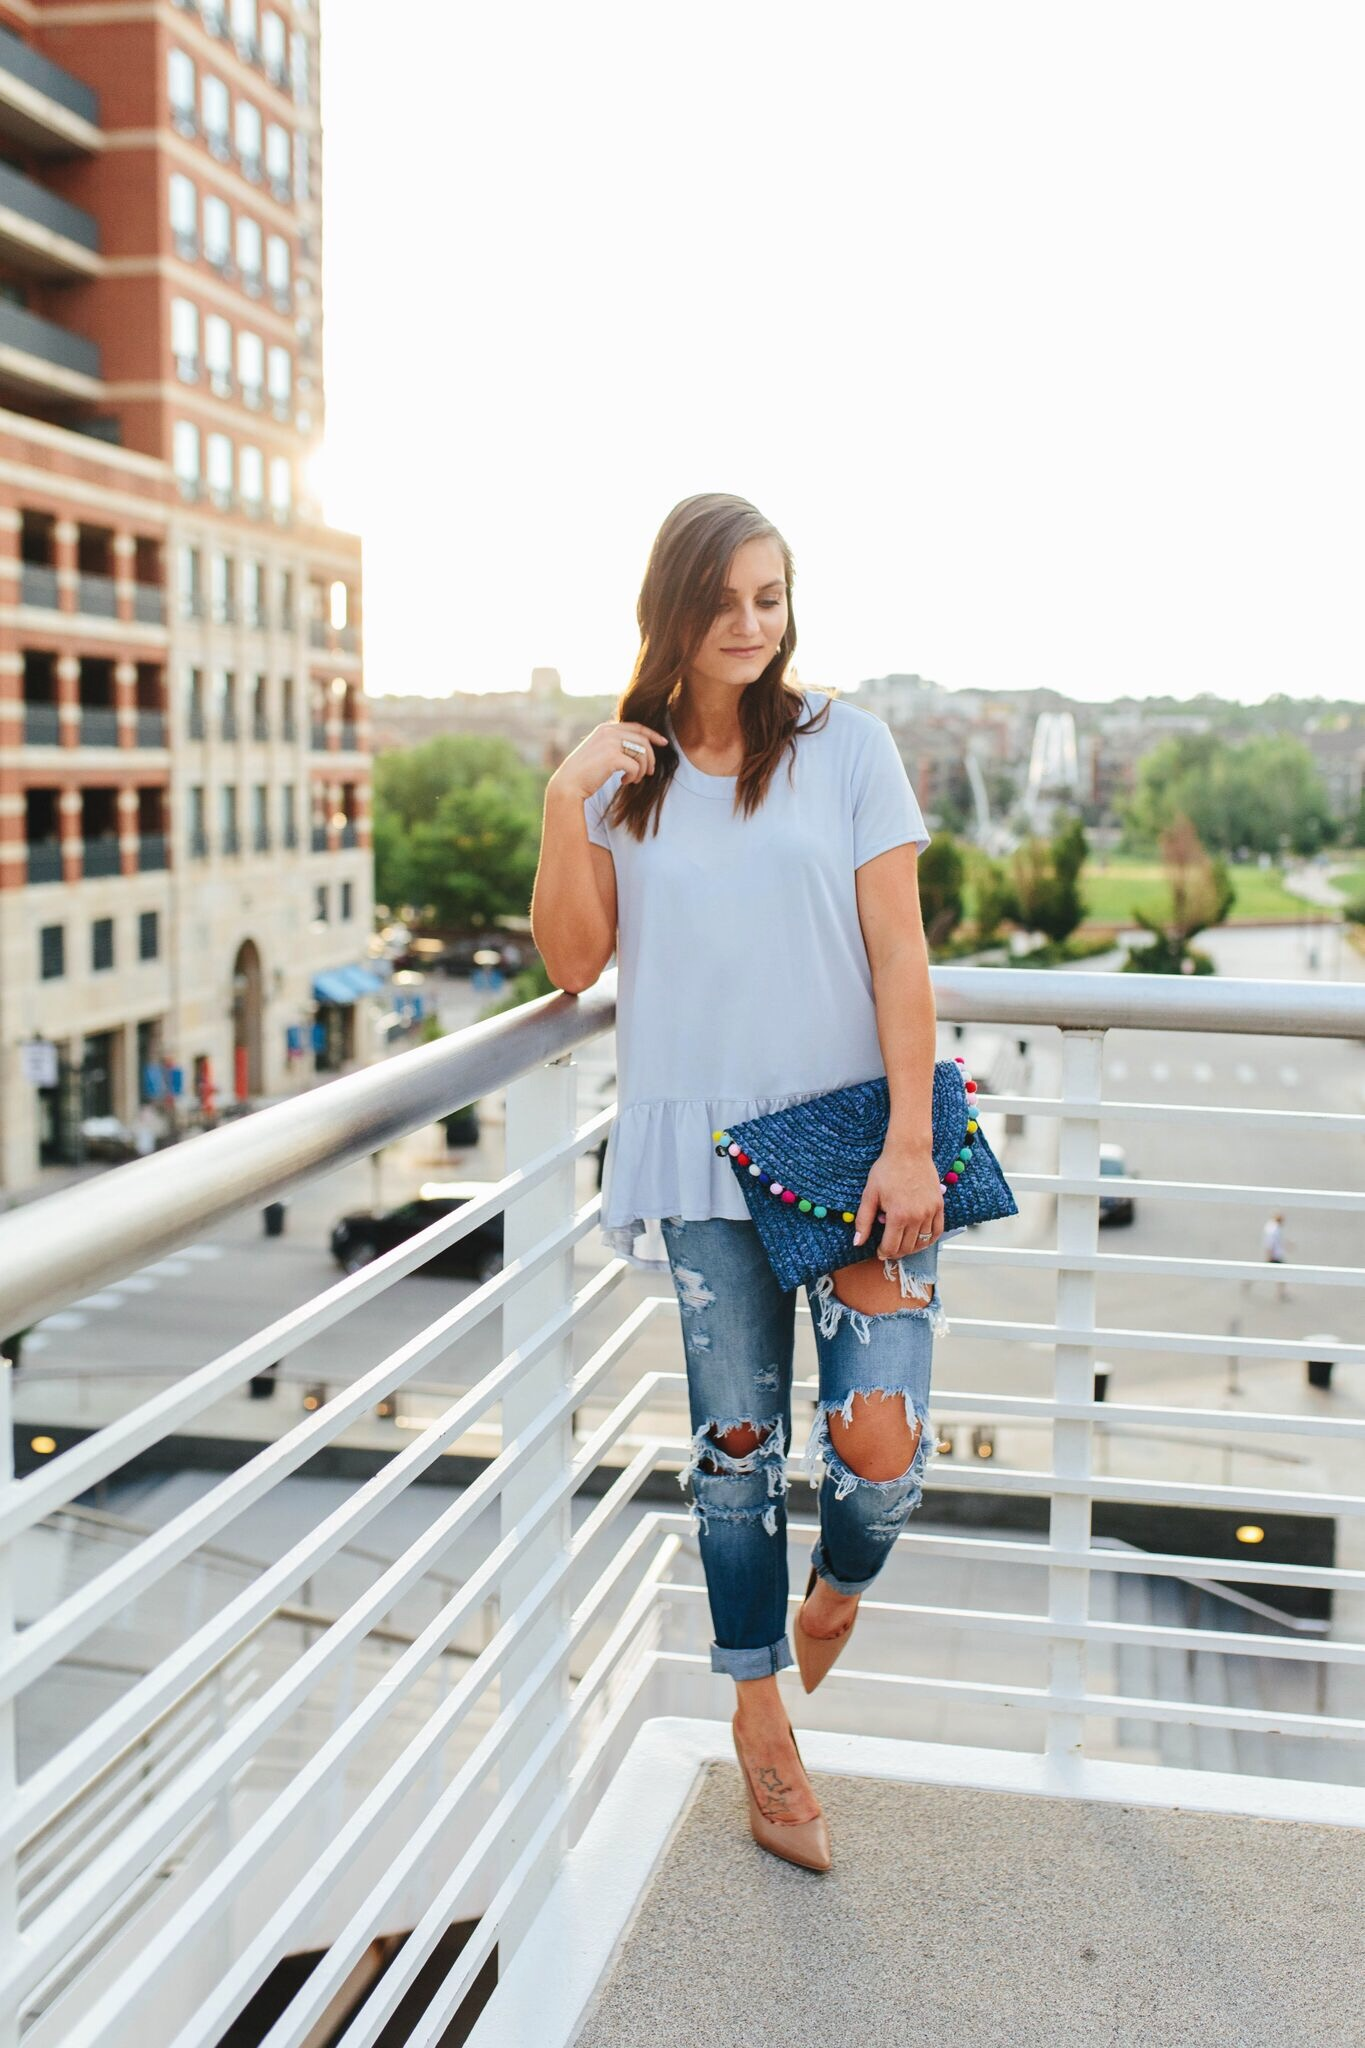 """<img src =""""how-to-wear-boyfriend-jeans.jpg"""" alt = """"fashion-bloger-teddybearsandlipstick-leans-against-the-rails-of-millenium-bridge-in-dowtown-denver-one-heeled-shoe-resting-on-the-rails-as-her-gaze-is-fixed-on-the-distant-view-destroyed-boyfirend-jeans-are-the-hghlight-of-her-outfit"""">"""